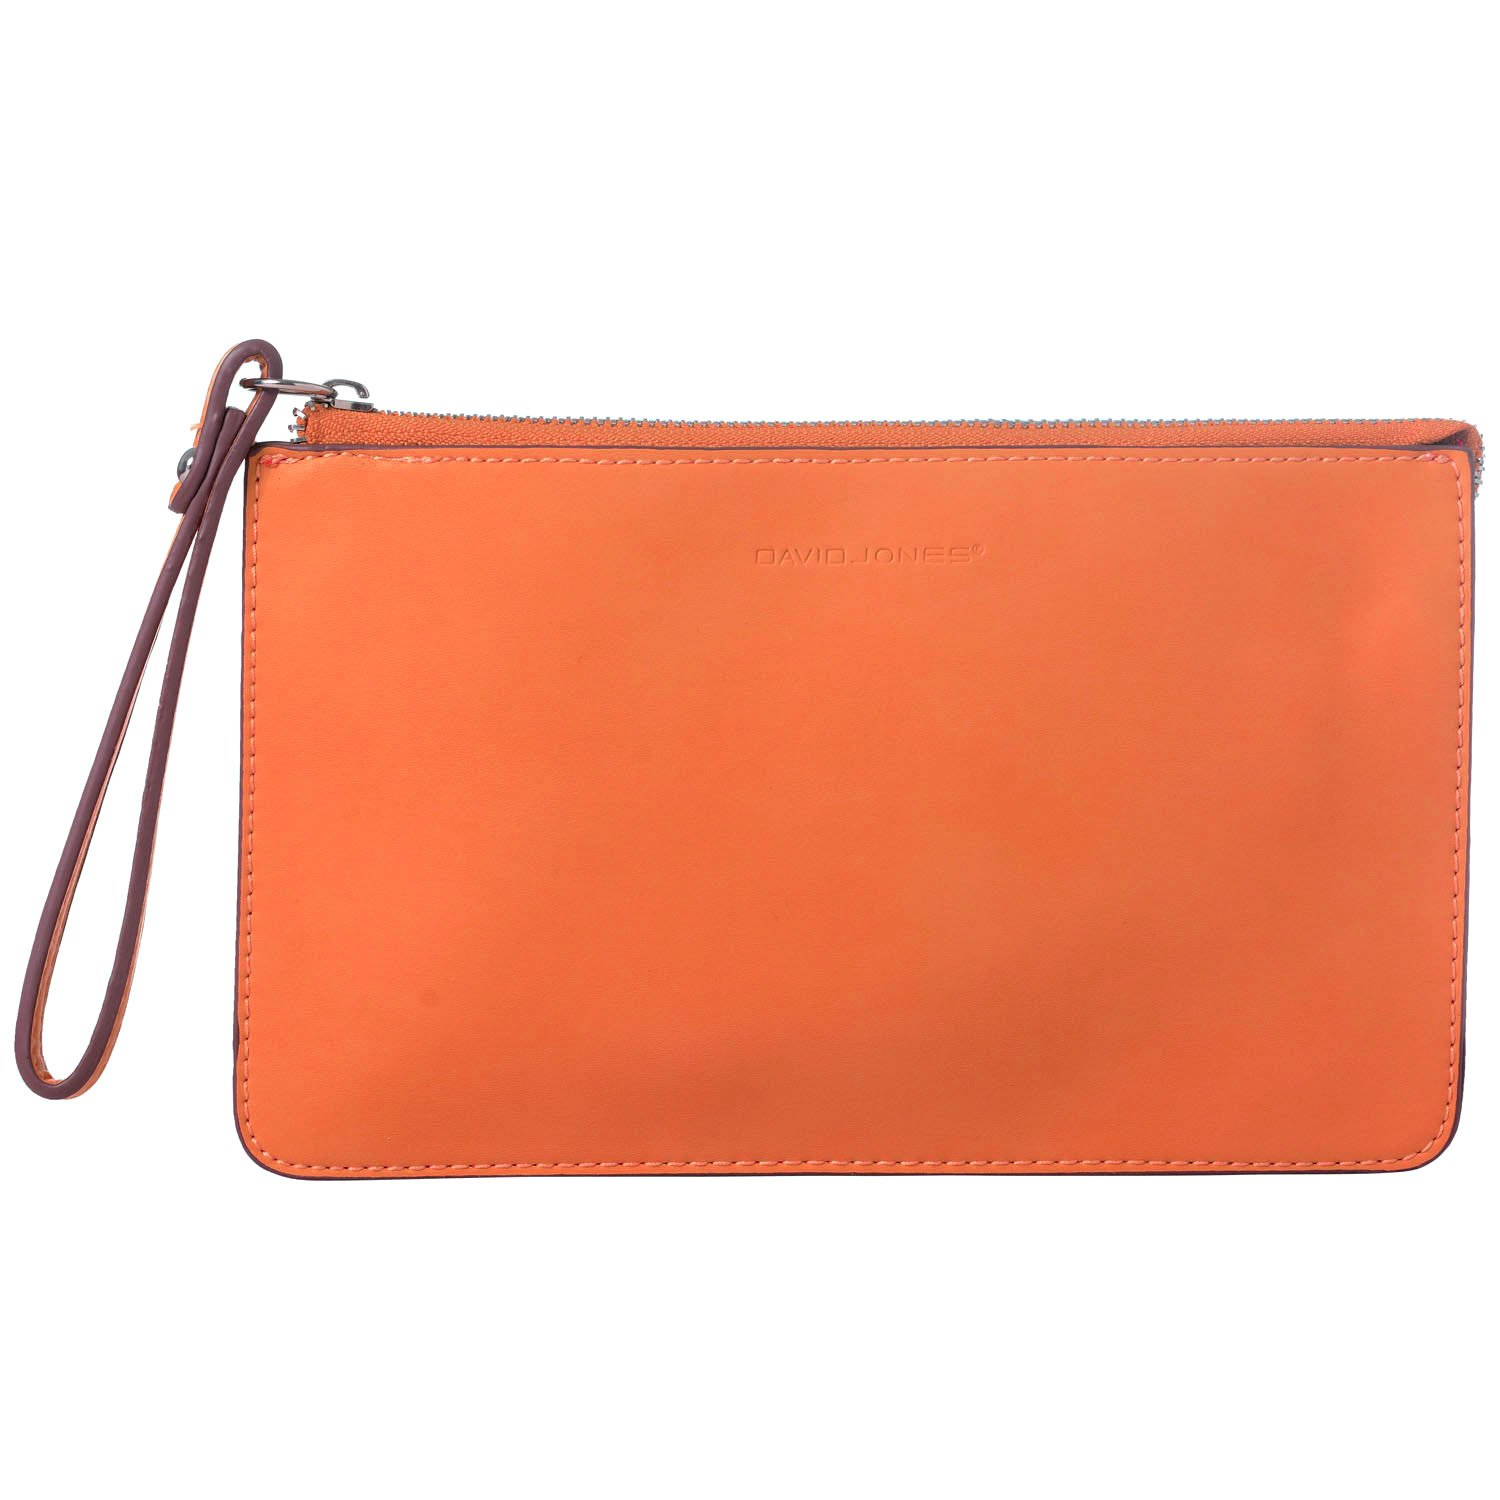 DAVID - JONES INTERNATIONAL Orange Small Wallets Clutch Crossbody Wristlet Cell Phone Purse with Shoulder Strap for Women